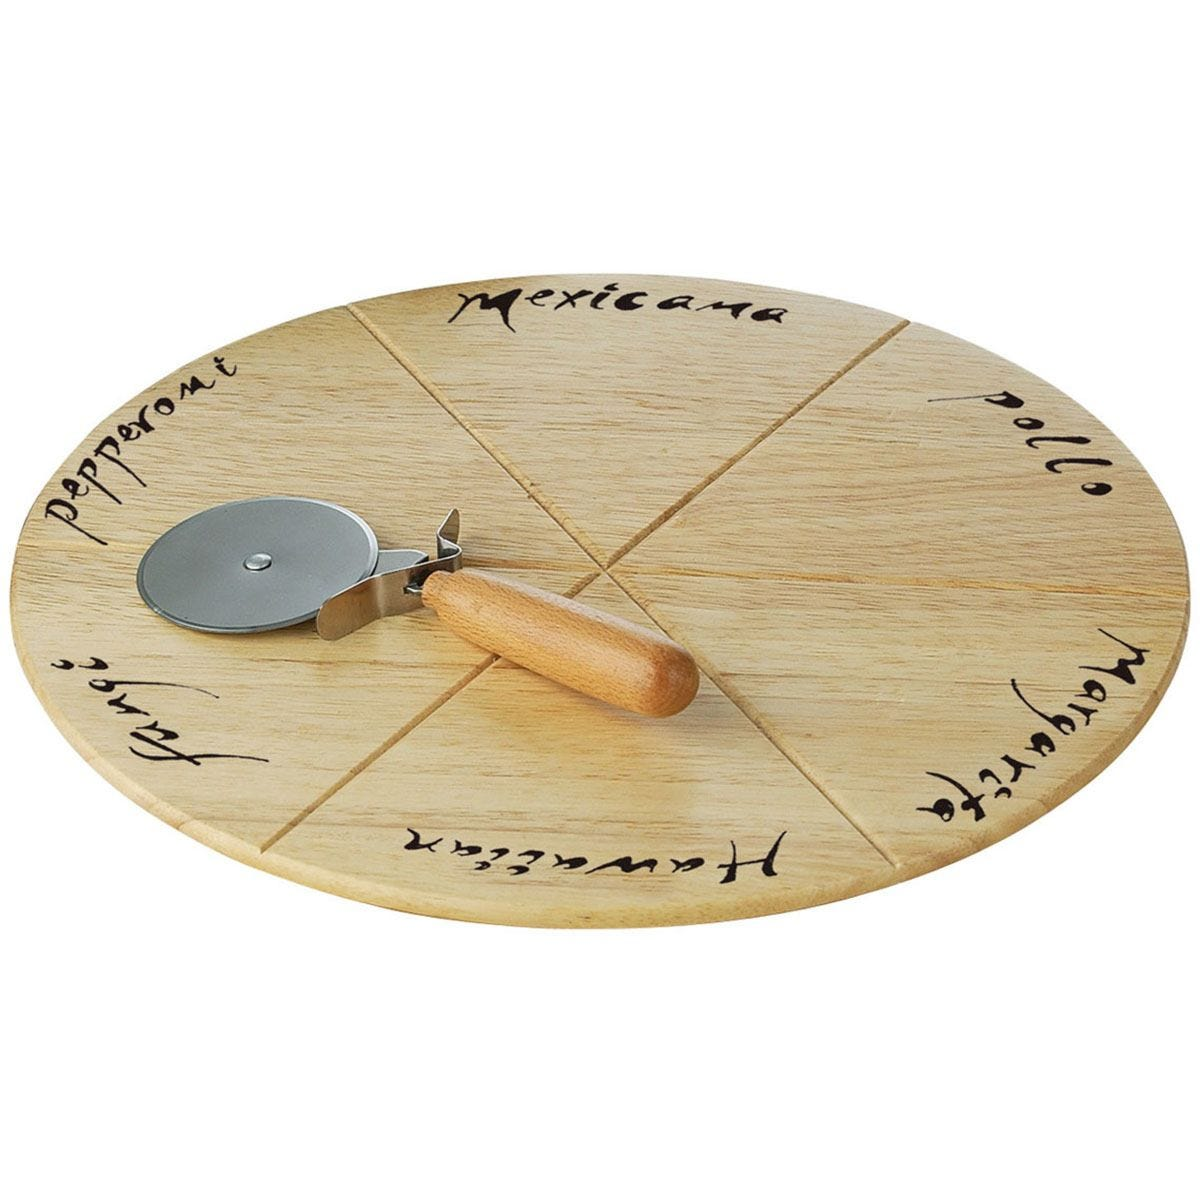 Premier Housewares Pizza Board Set with Pizza Cutter